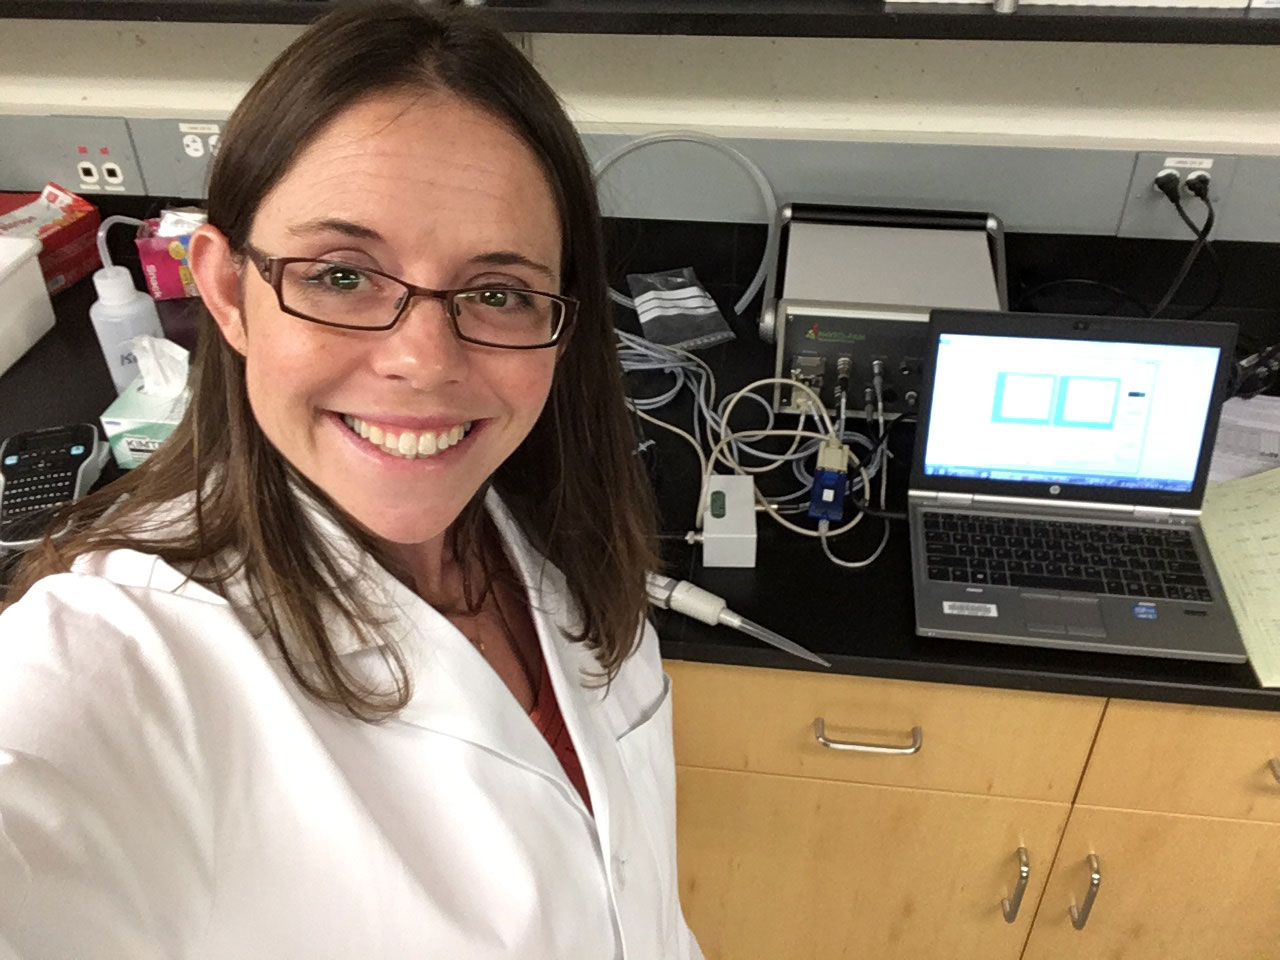 Levine in her lab at USC, making measurements of phytoplankton physiology using a tool called a PHYTO-PAM, which measures photosynthetic capacity. | Naomi Levine